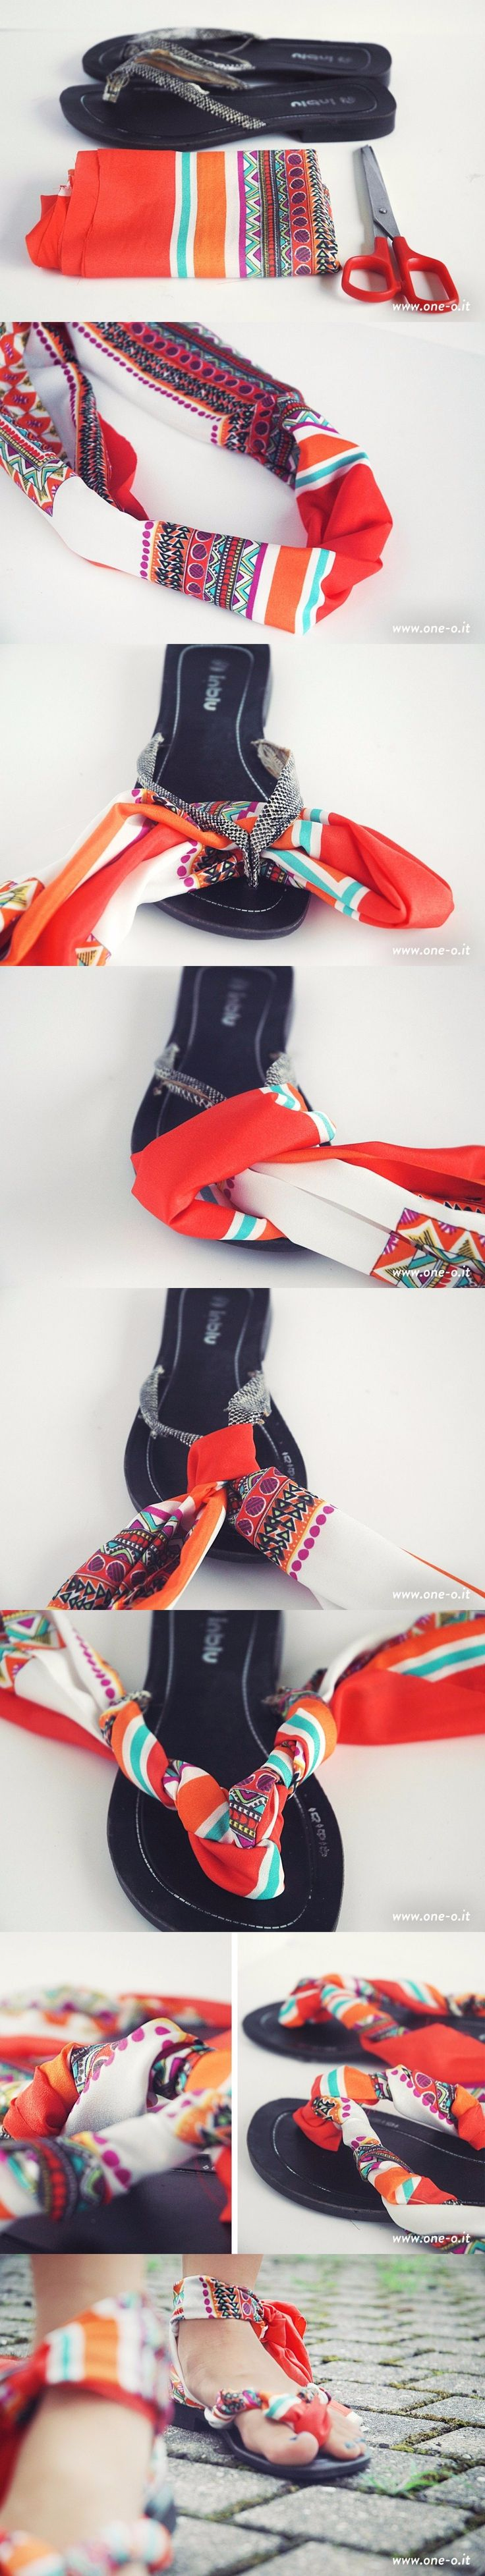 one-o.it - Sandalias DIY de tela - DIY Easy Flips Flops